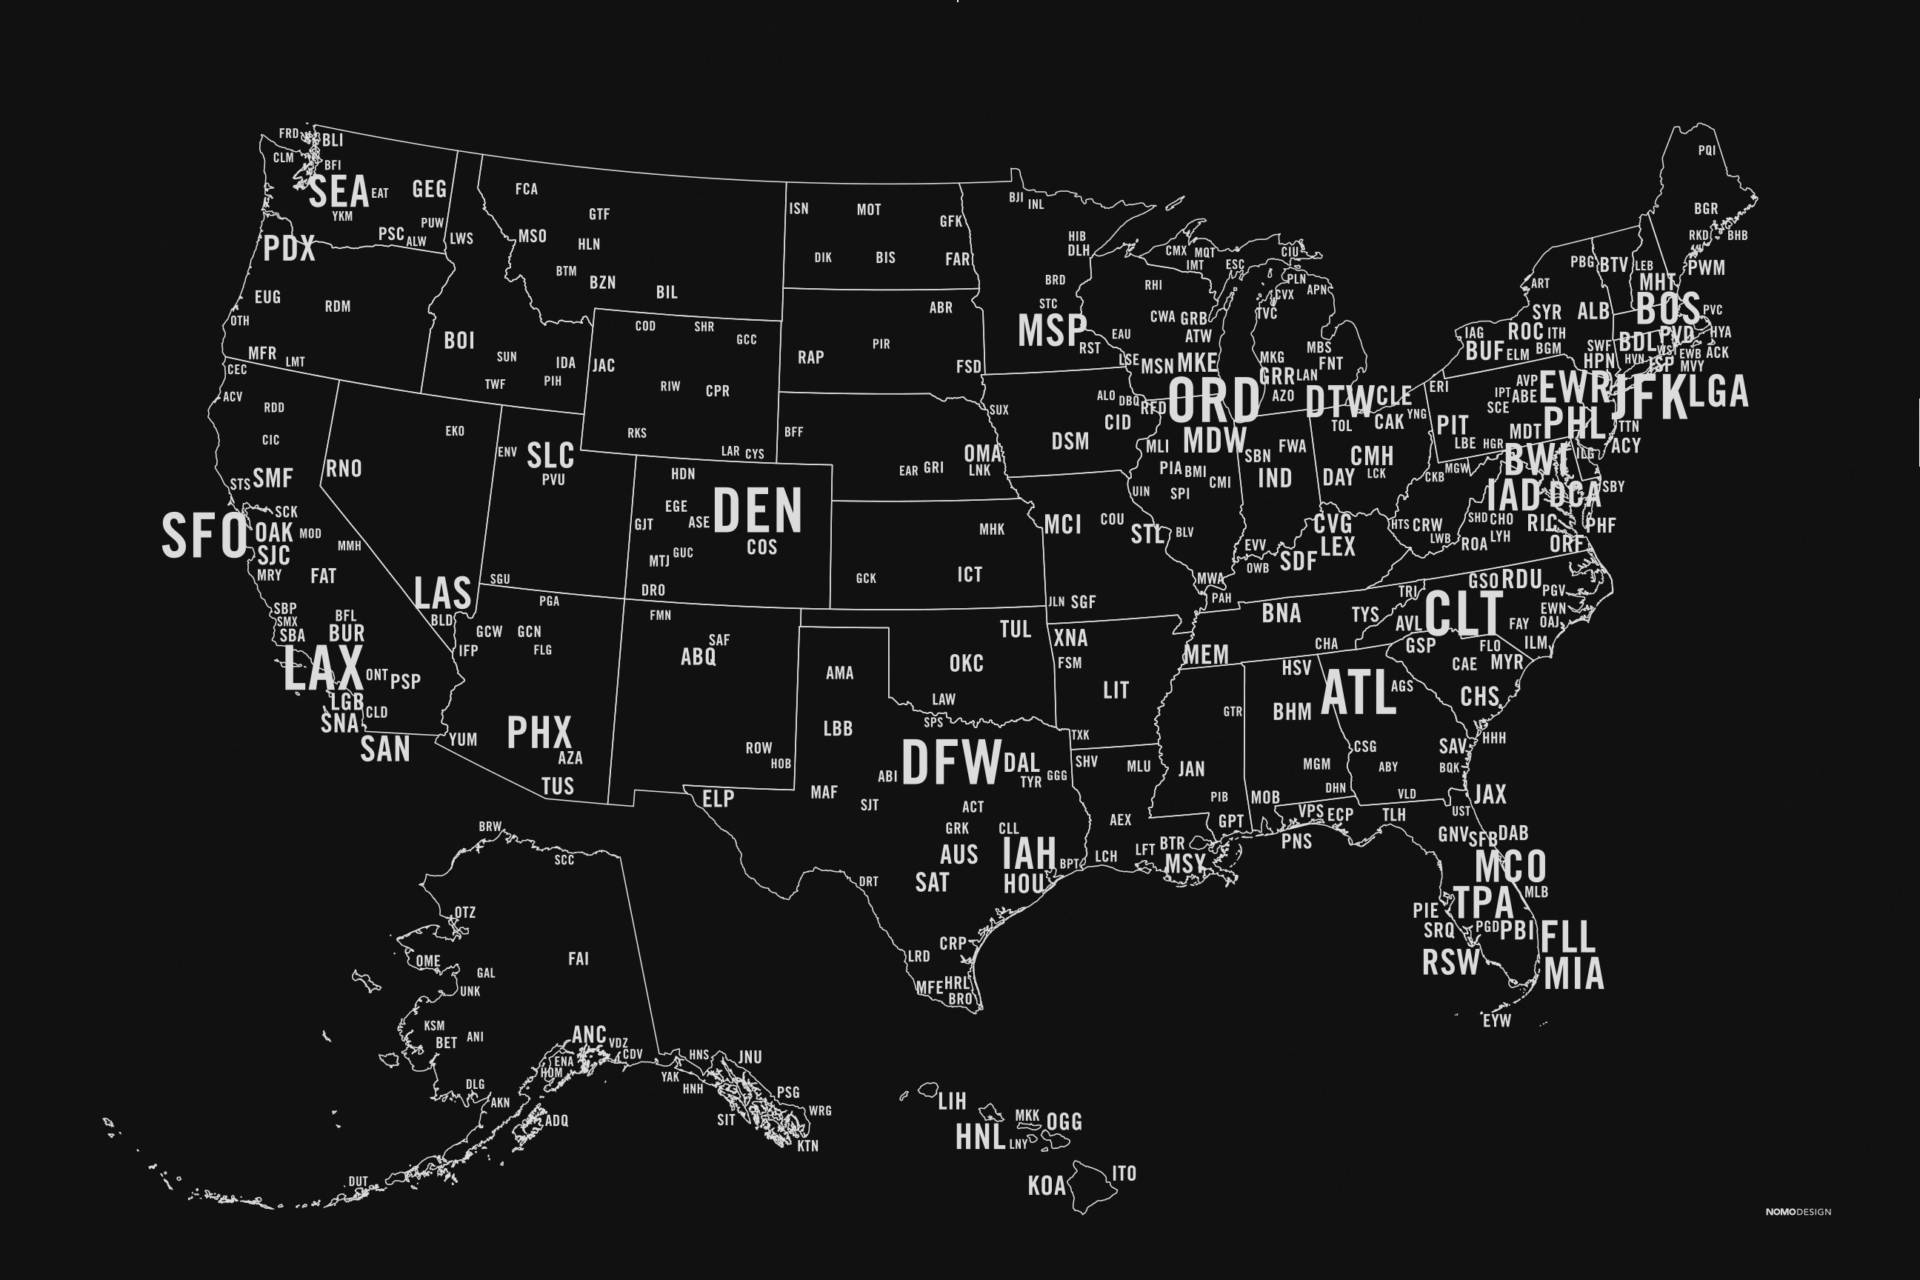 Nearly 400 Airport Codes From Around The United States Text Sized Is Based On Their